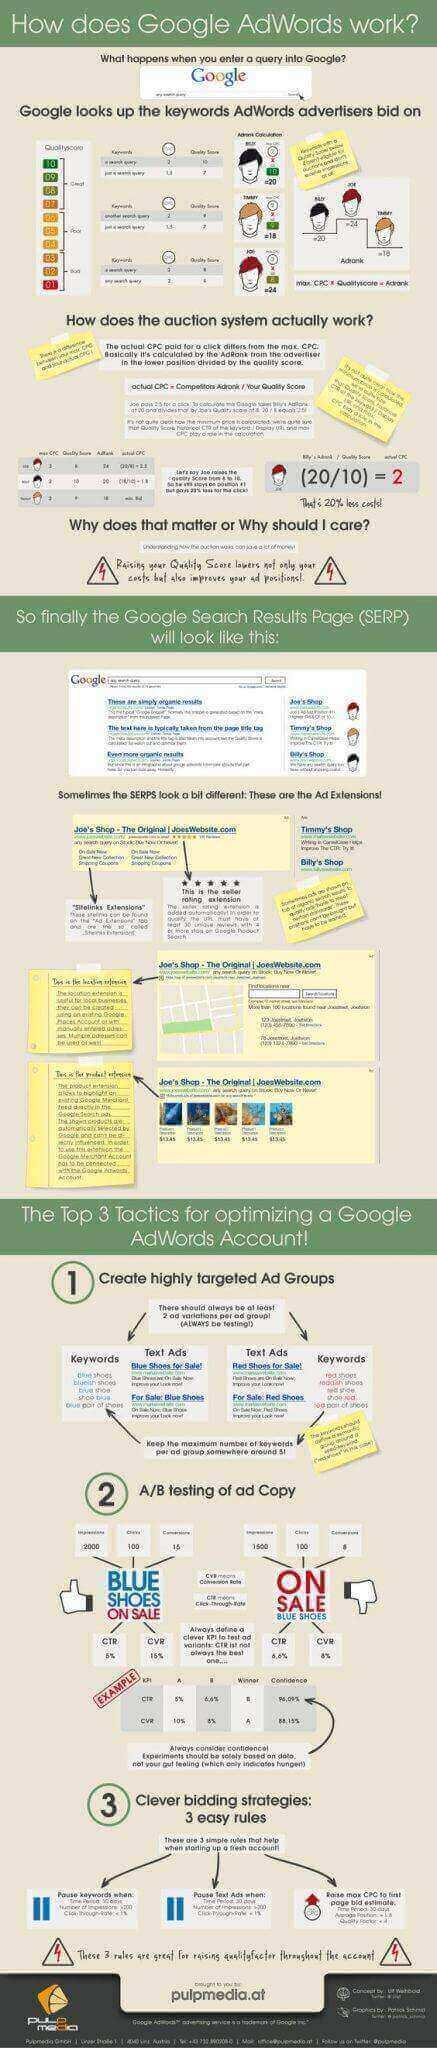 how to become an adwords consultant